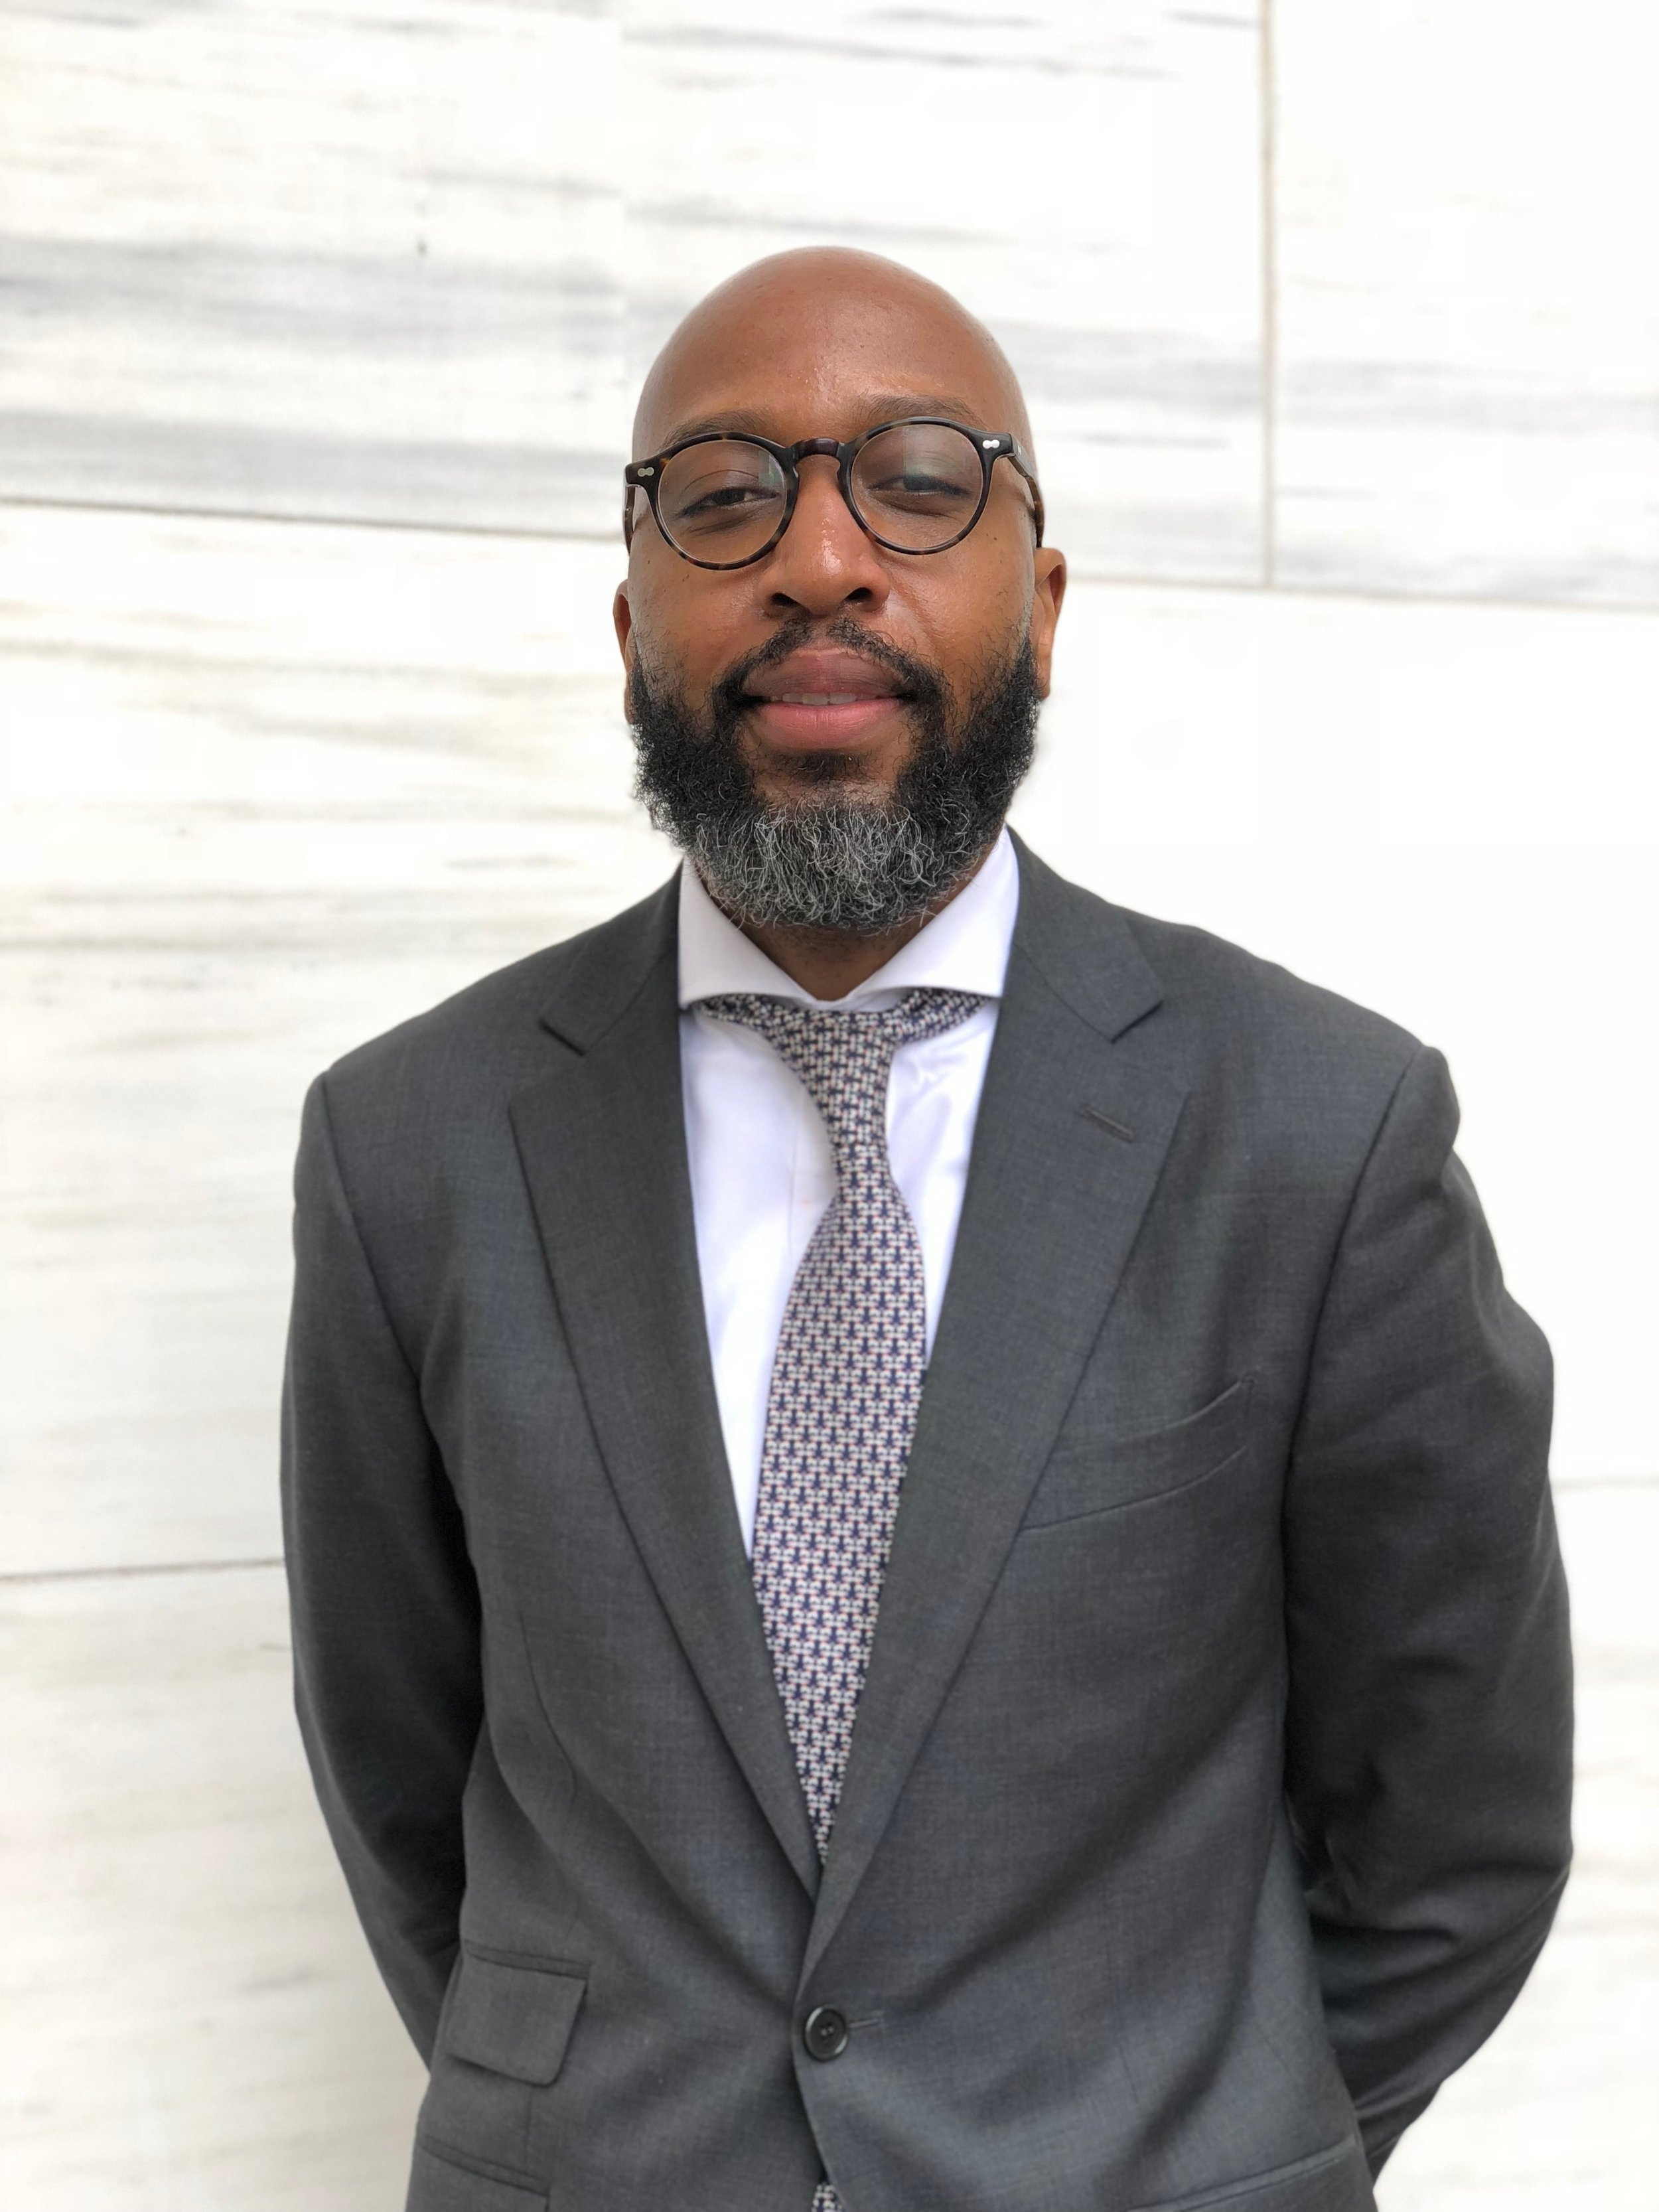 Dwane Omar Jones   Dwane Omar Jones specializes in commercial real estate investments and ground-up development. Mr. Jones earned his MBA from the NYU Leonard N. Stern School of Business where he was a Management Leadership for Tomorrow Fellow, Robert Toigo Foundation Fellow, and Consortium for Graduate Study in Management Fellow. He previously worked as a corporate attorney at a large NYC law firm on corporate reorganization matters. Mr. Jones earned his JD from Howard University School of Law where he was a Howard University School of Law Merit Scholar, and won the CALI Excellence for the Future Award in Contract Law. Mr. Jones earned his BS from the Zarb School of Business at Hofstra University. He is the President of the Howard University School of Law Alumni Club of New York, Fellow with the NYU Stern School of Business Center, Chair of the Board of Directors of A Better World Community Development Corporation of Emmanuel Baptist Church in Brooklyn, and member of the New York State Bar.